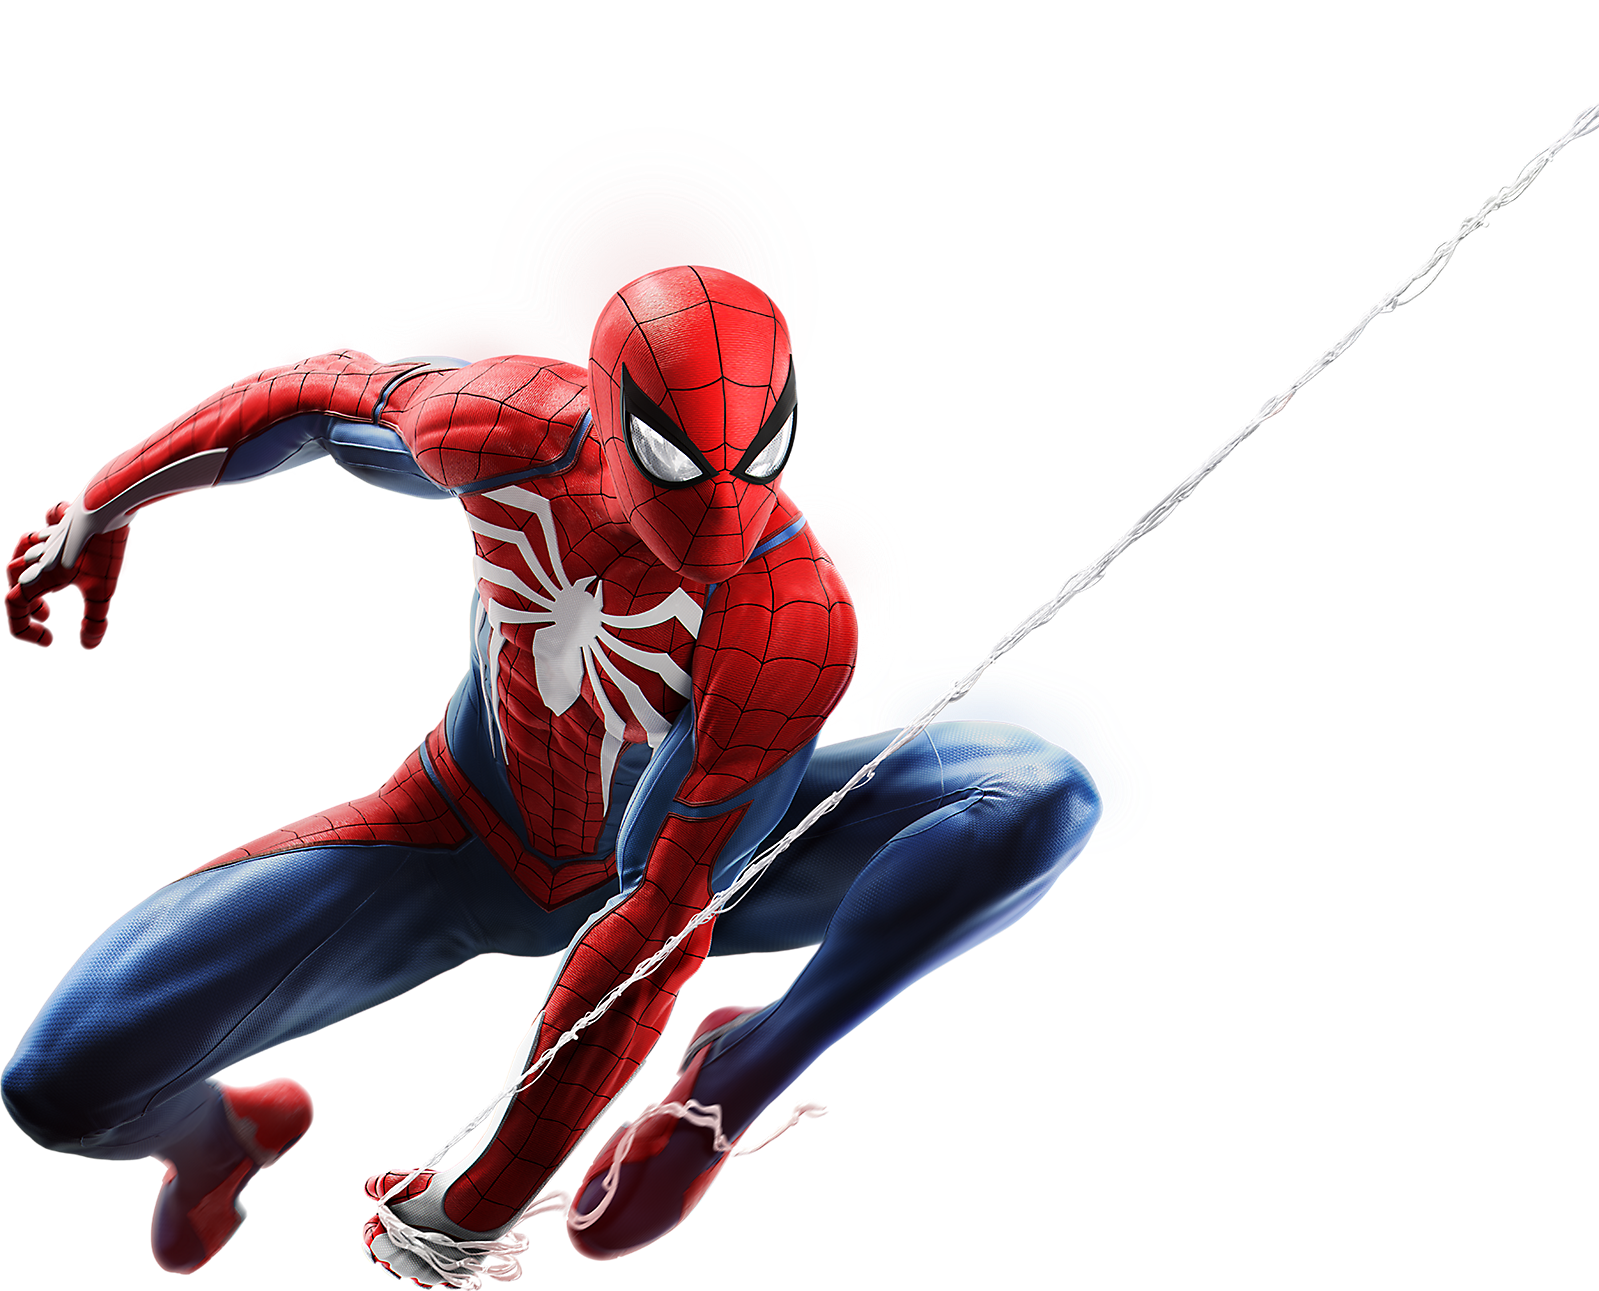 Spider-Man (Marvel's Spider-Man)